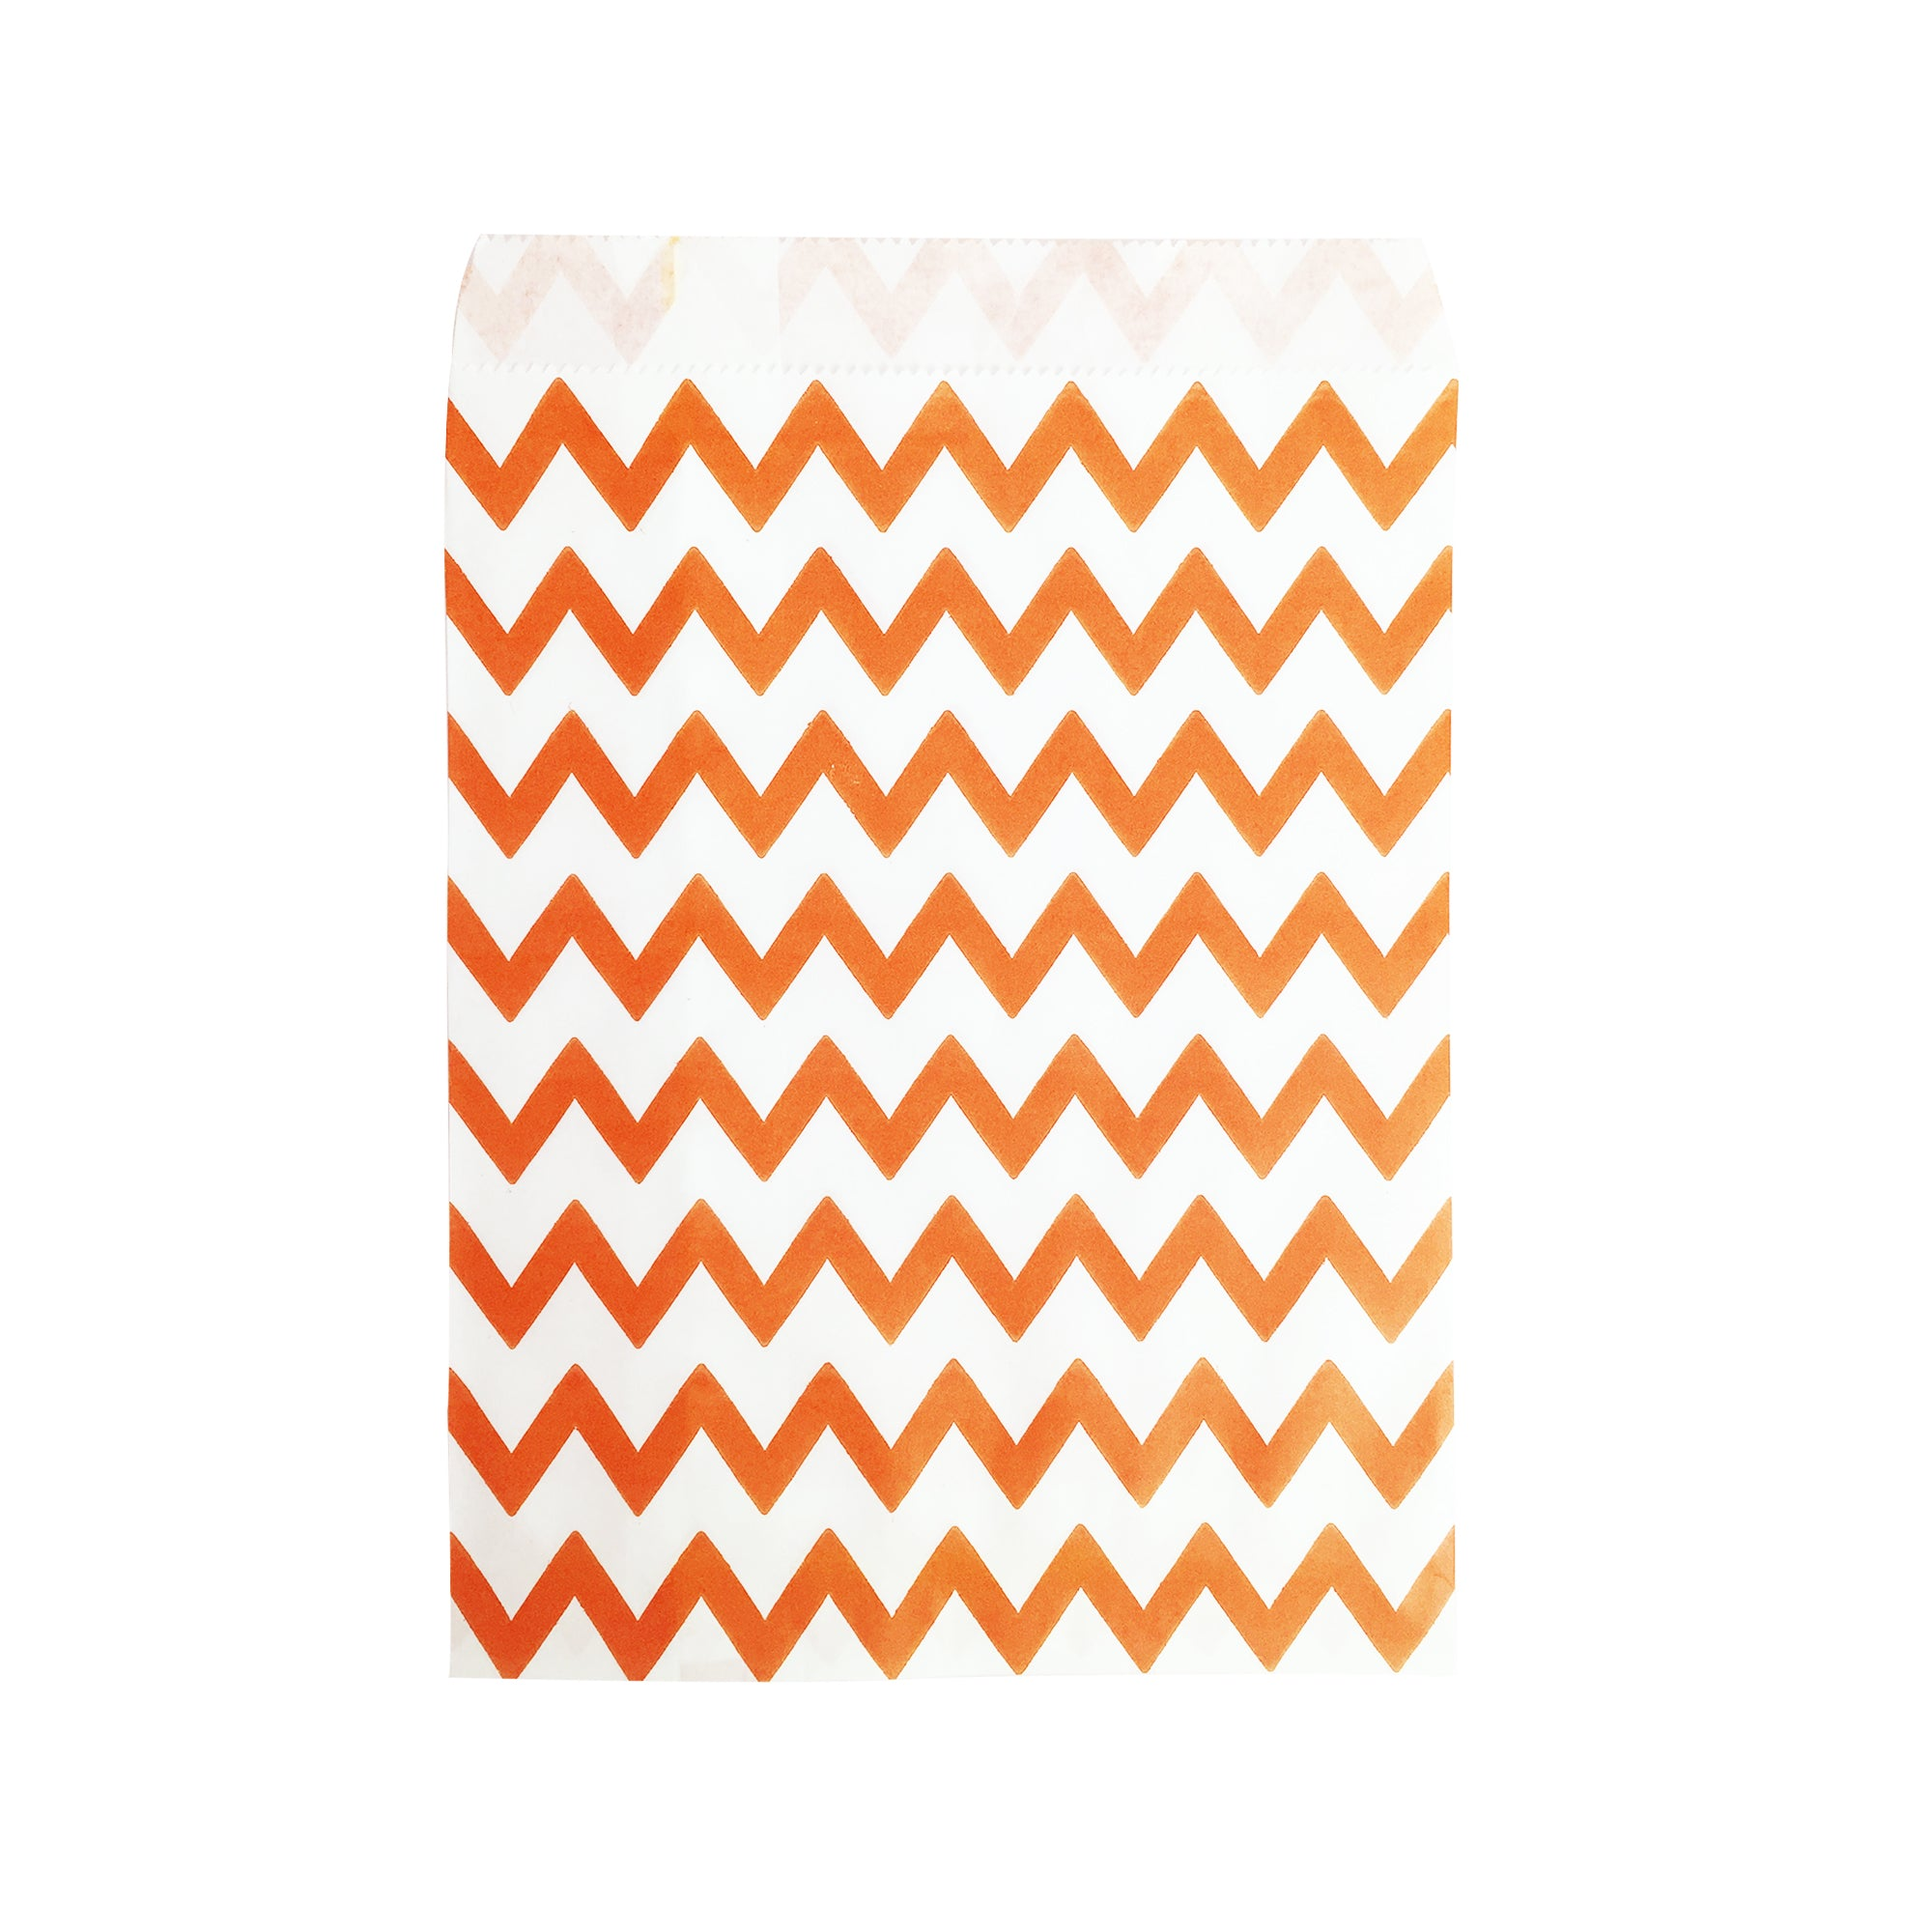 Big Orange Zigzag Paper Bag - 100 pcs